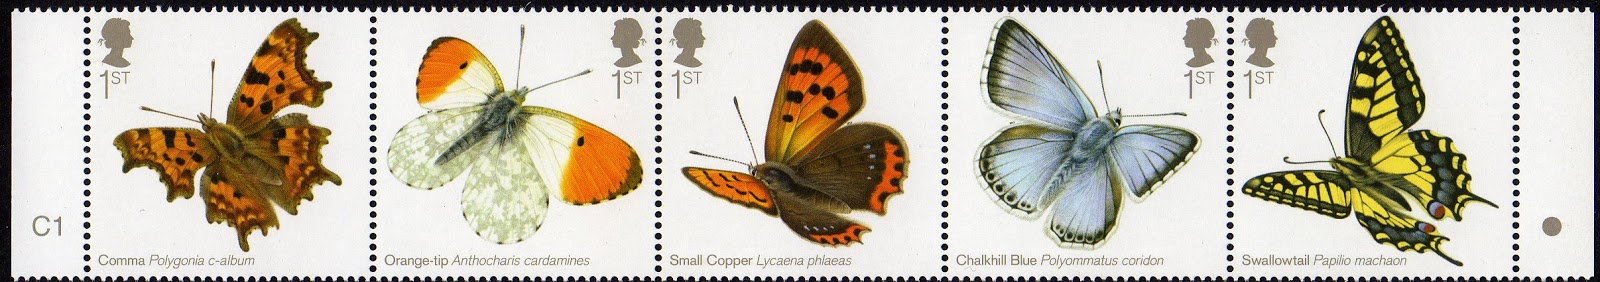 Strip of 5 butterfly stamps.